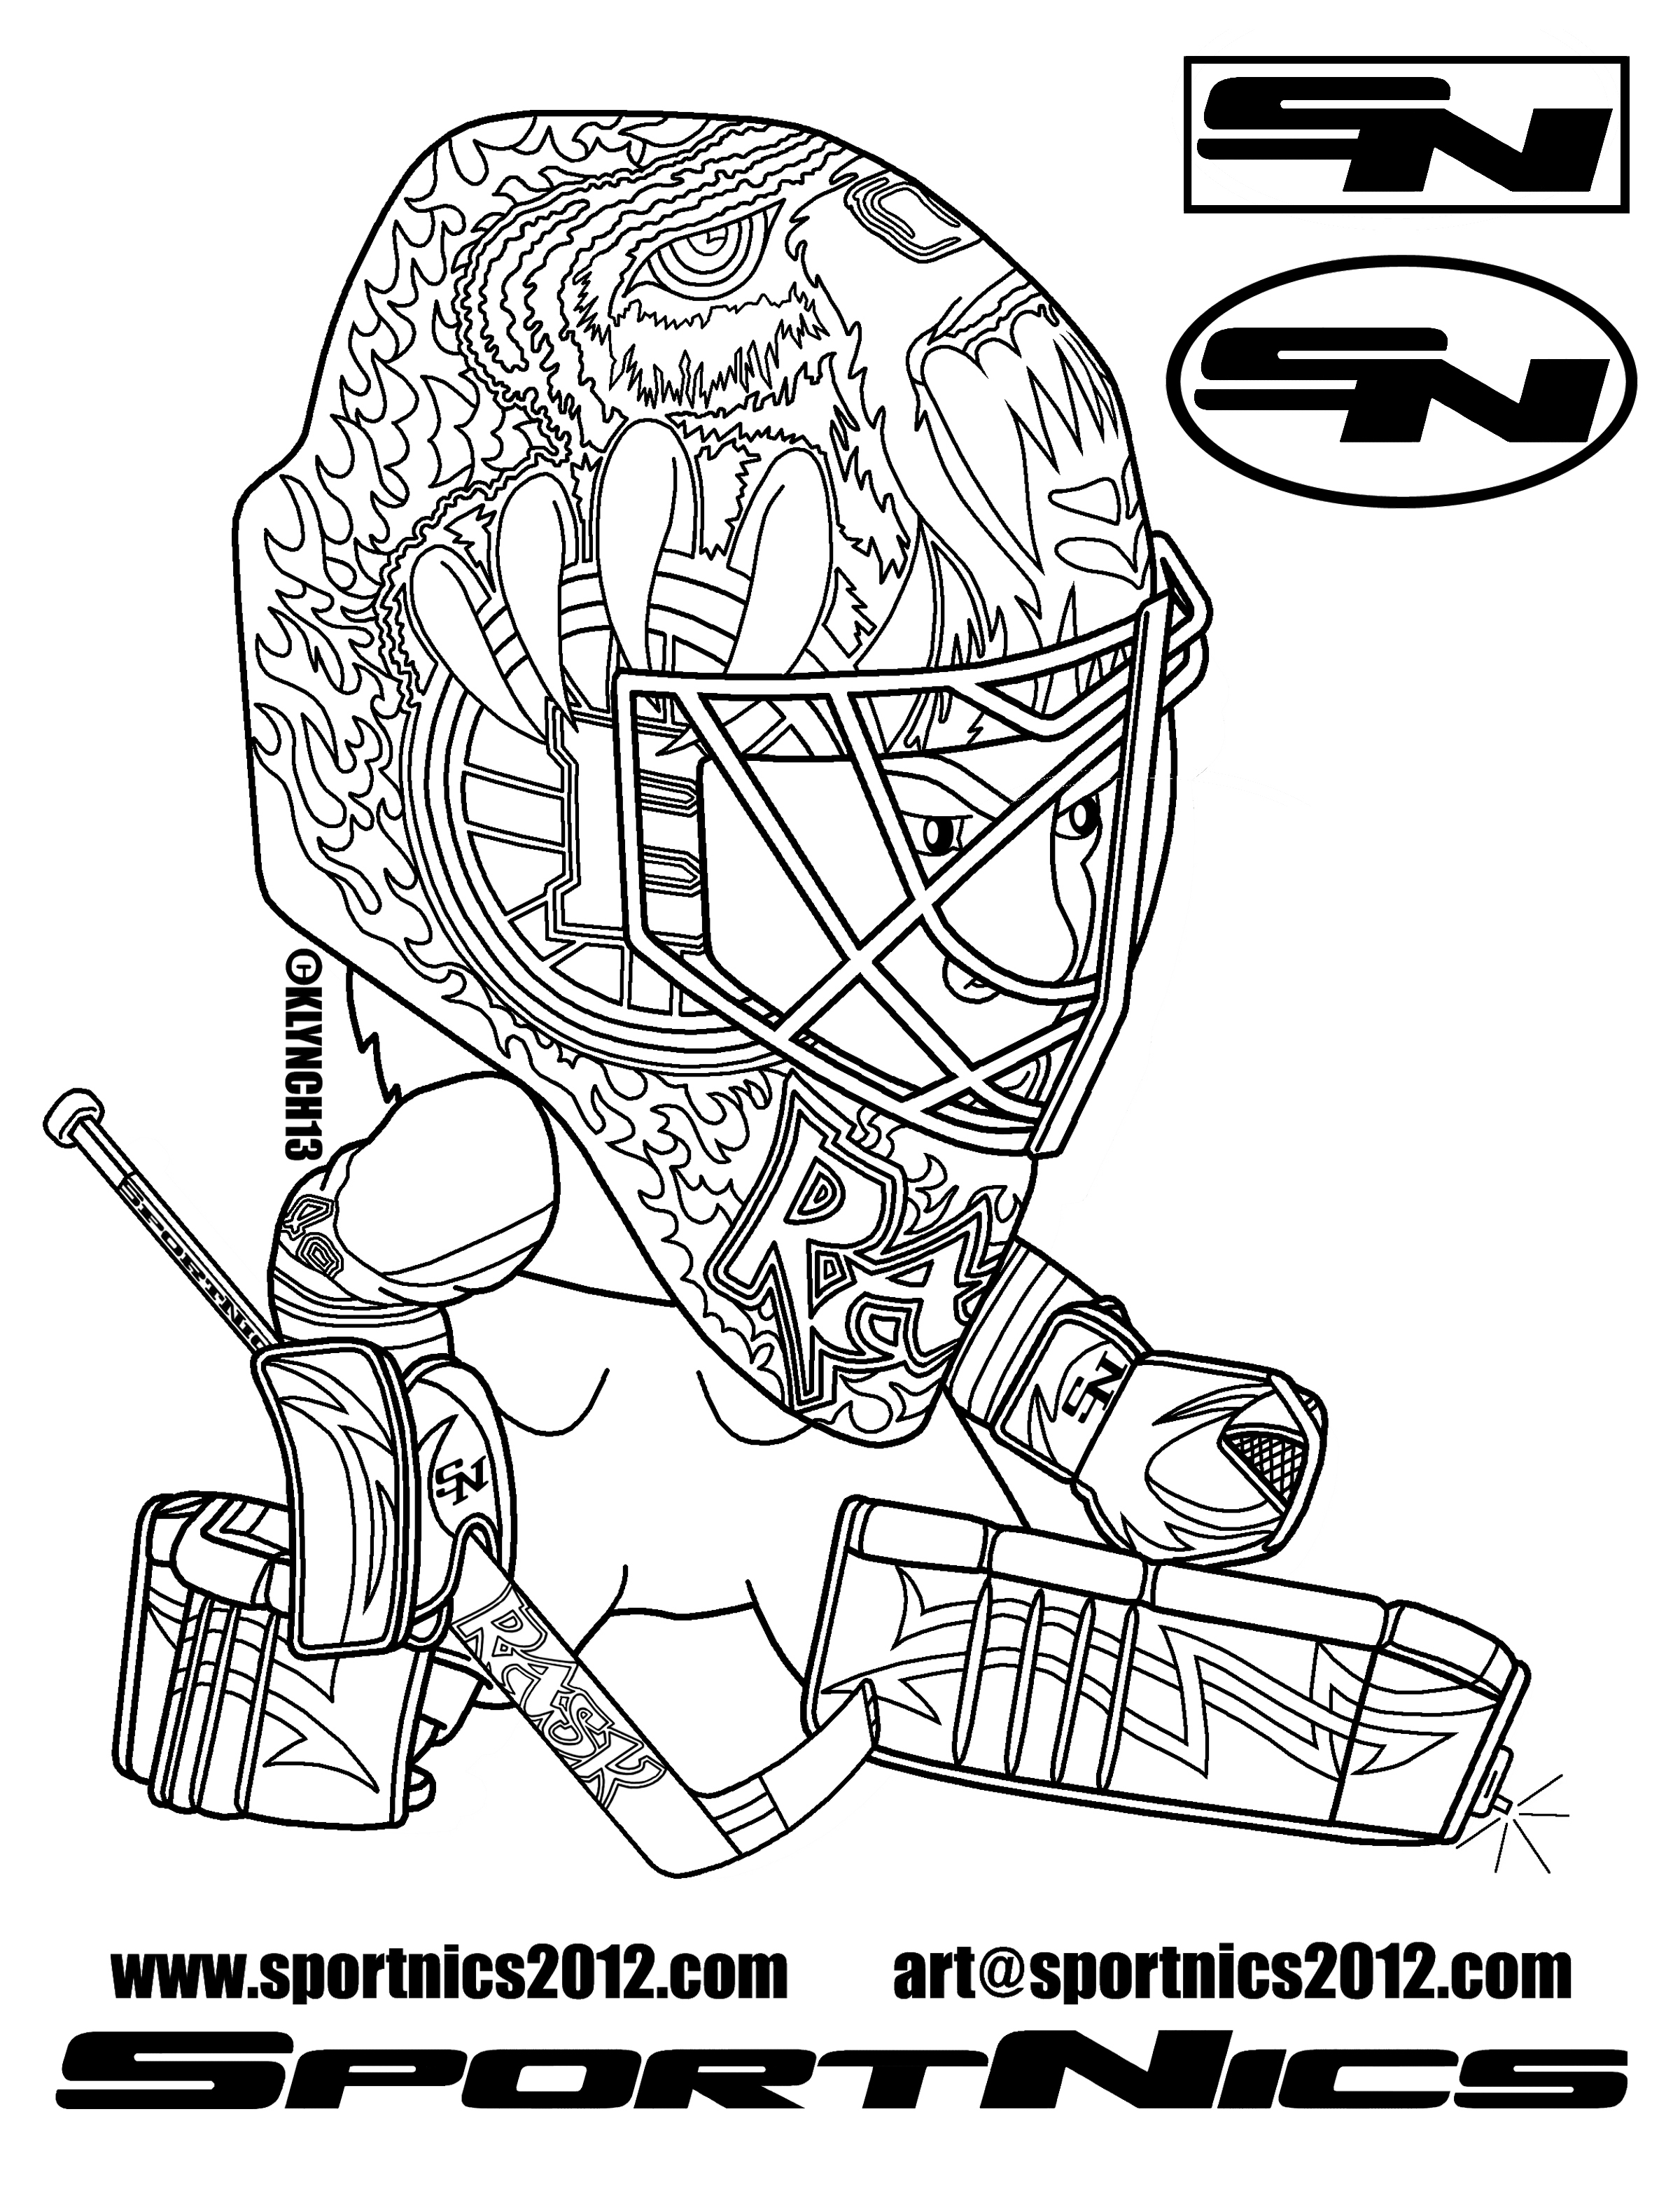 Hockey goalie drawing at free for for Hockey coloring pages printable